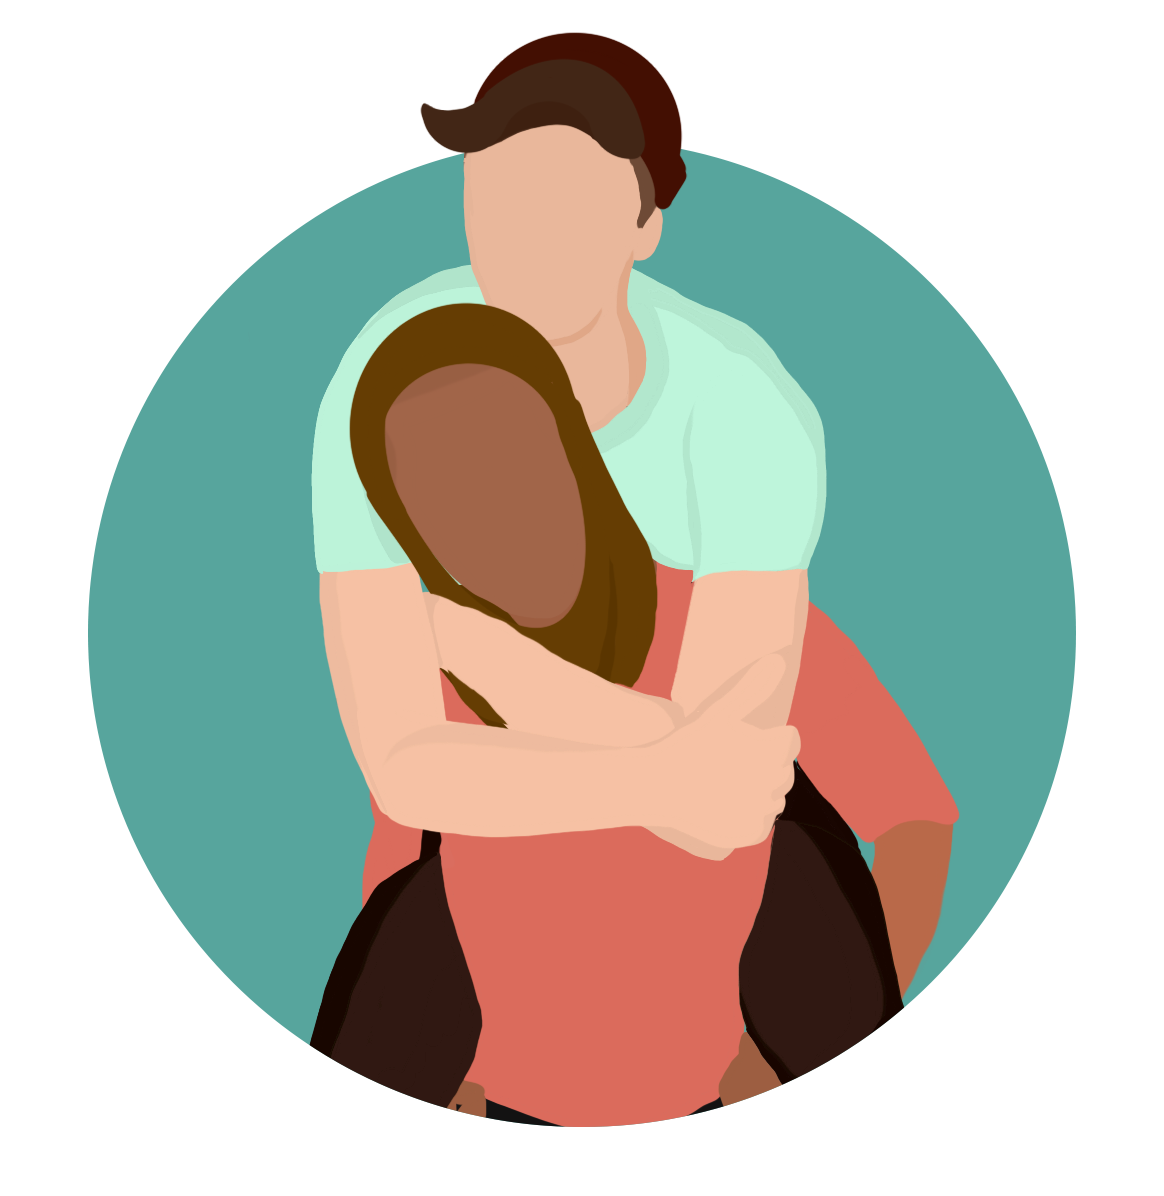 Colourful illustration of two people, one person has their arms hugging the other from behind